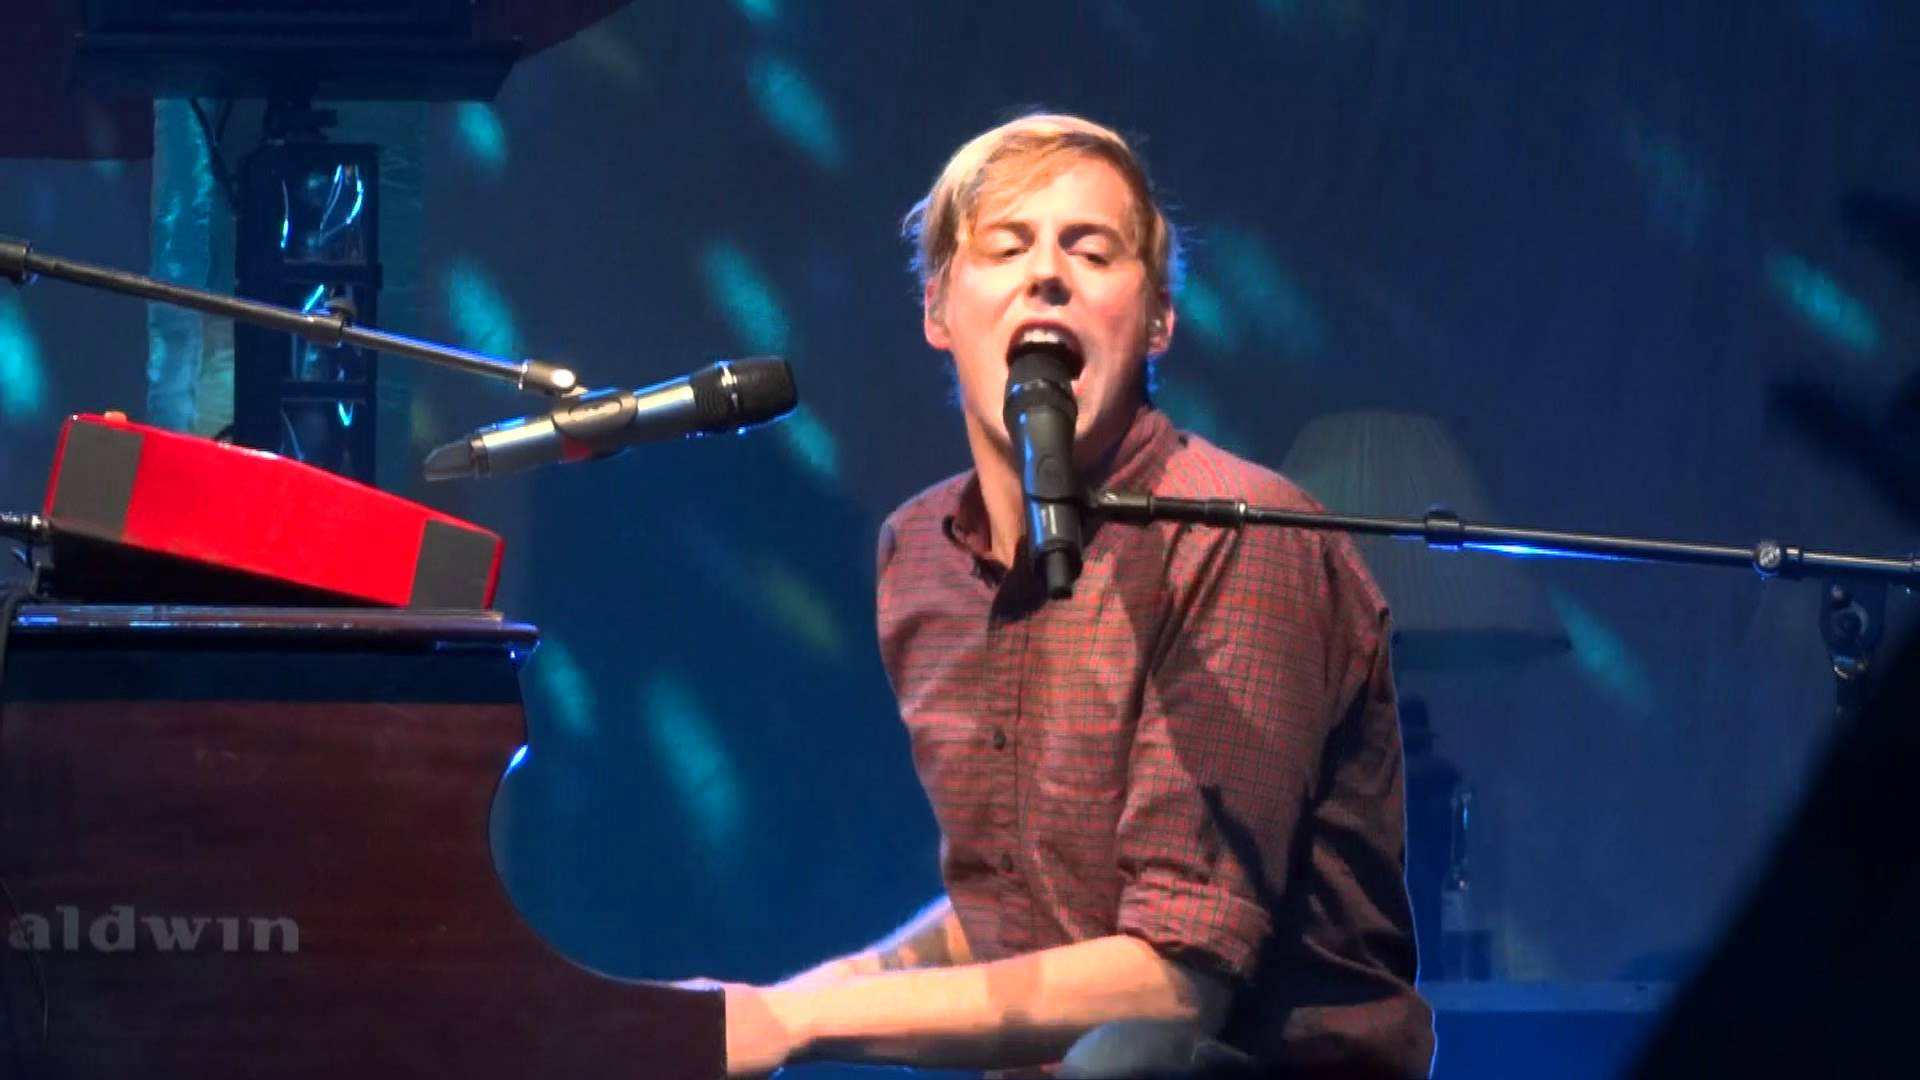 Jack's Mannequin Tour May Happen